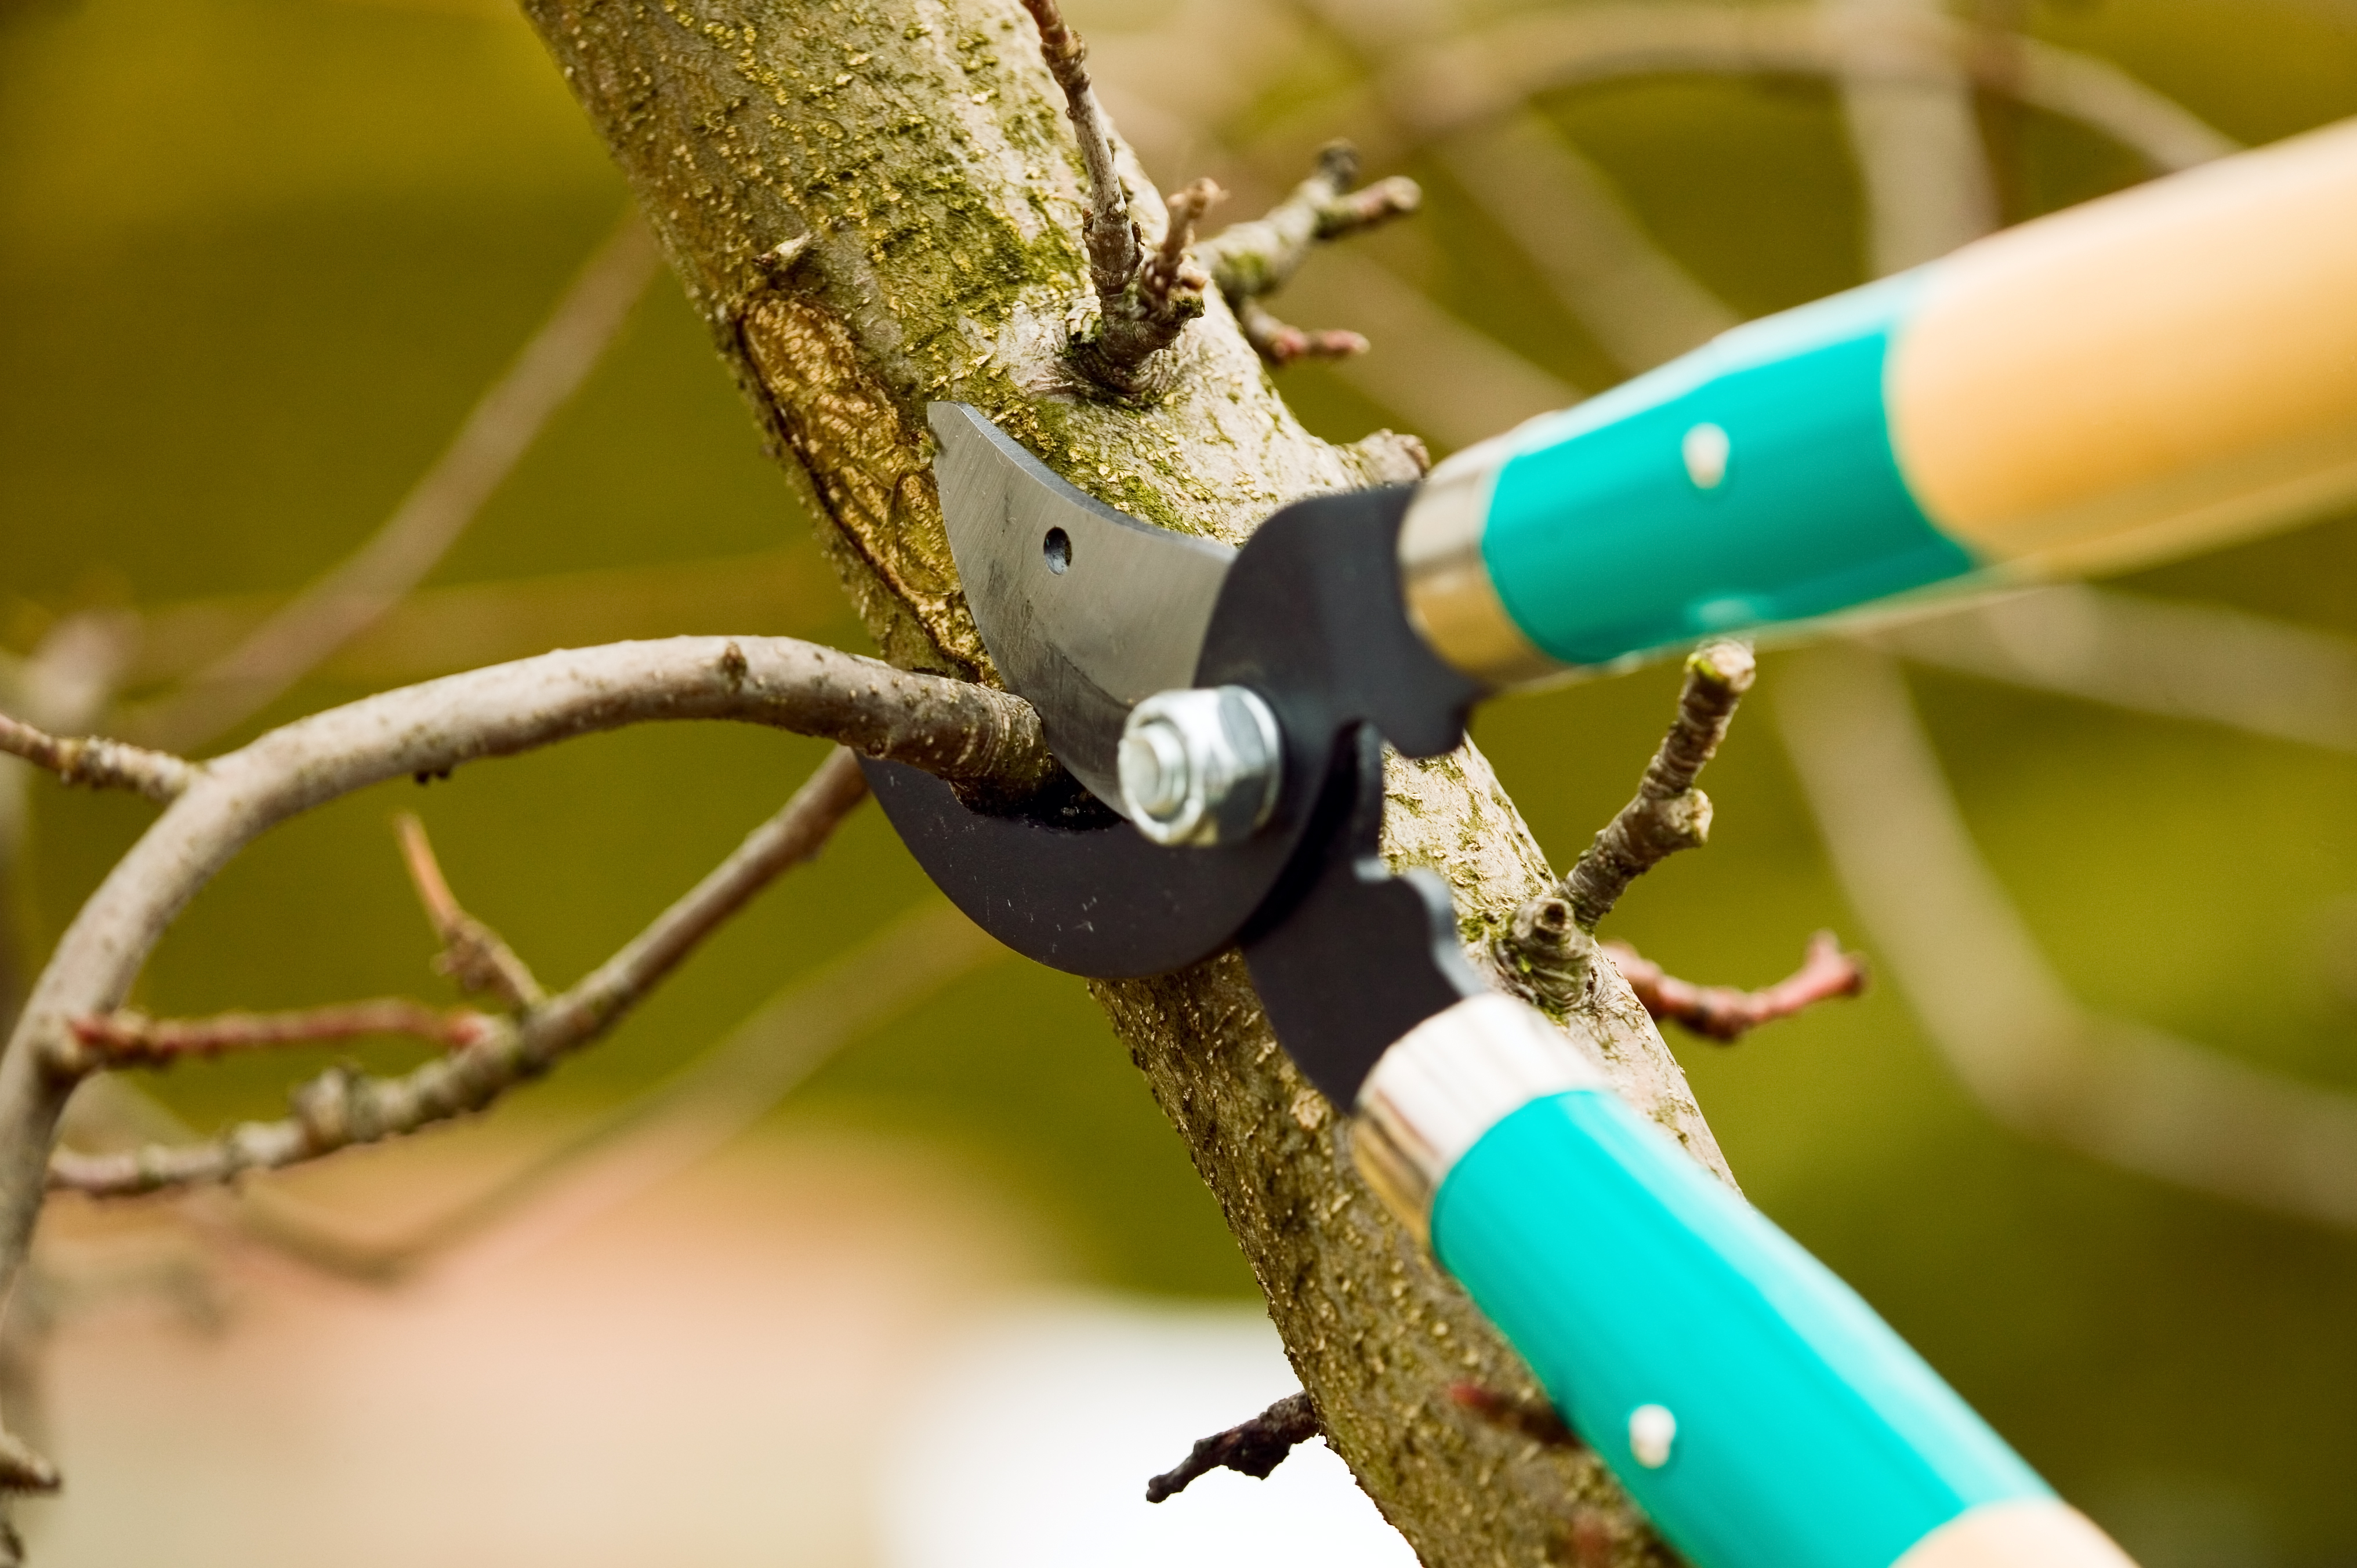 Most shrub and tree pruning is best done in late winter – that is, now.